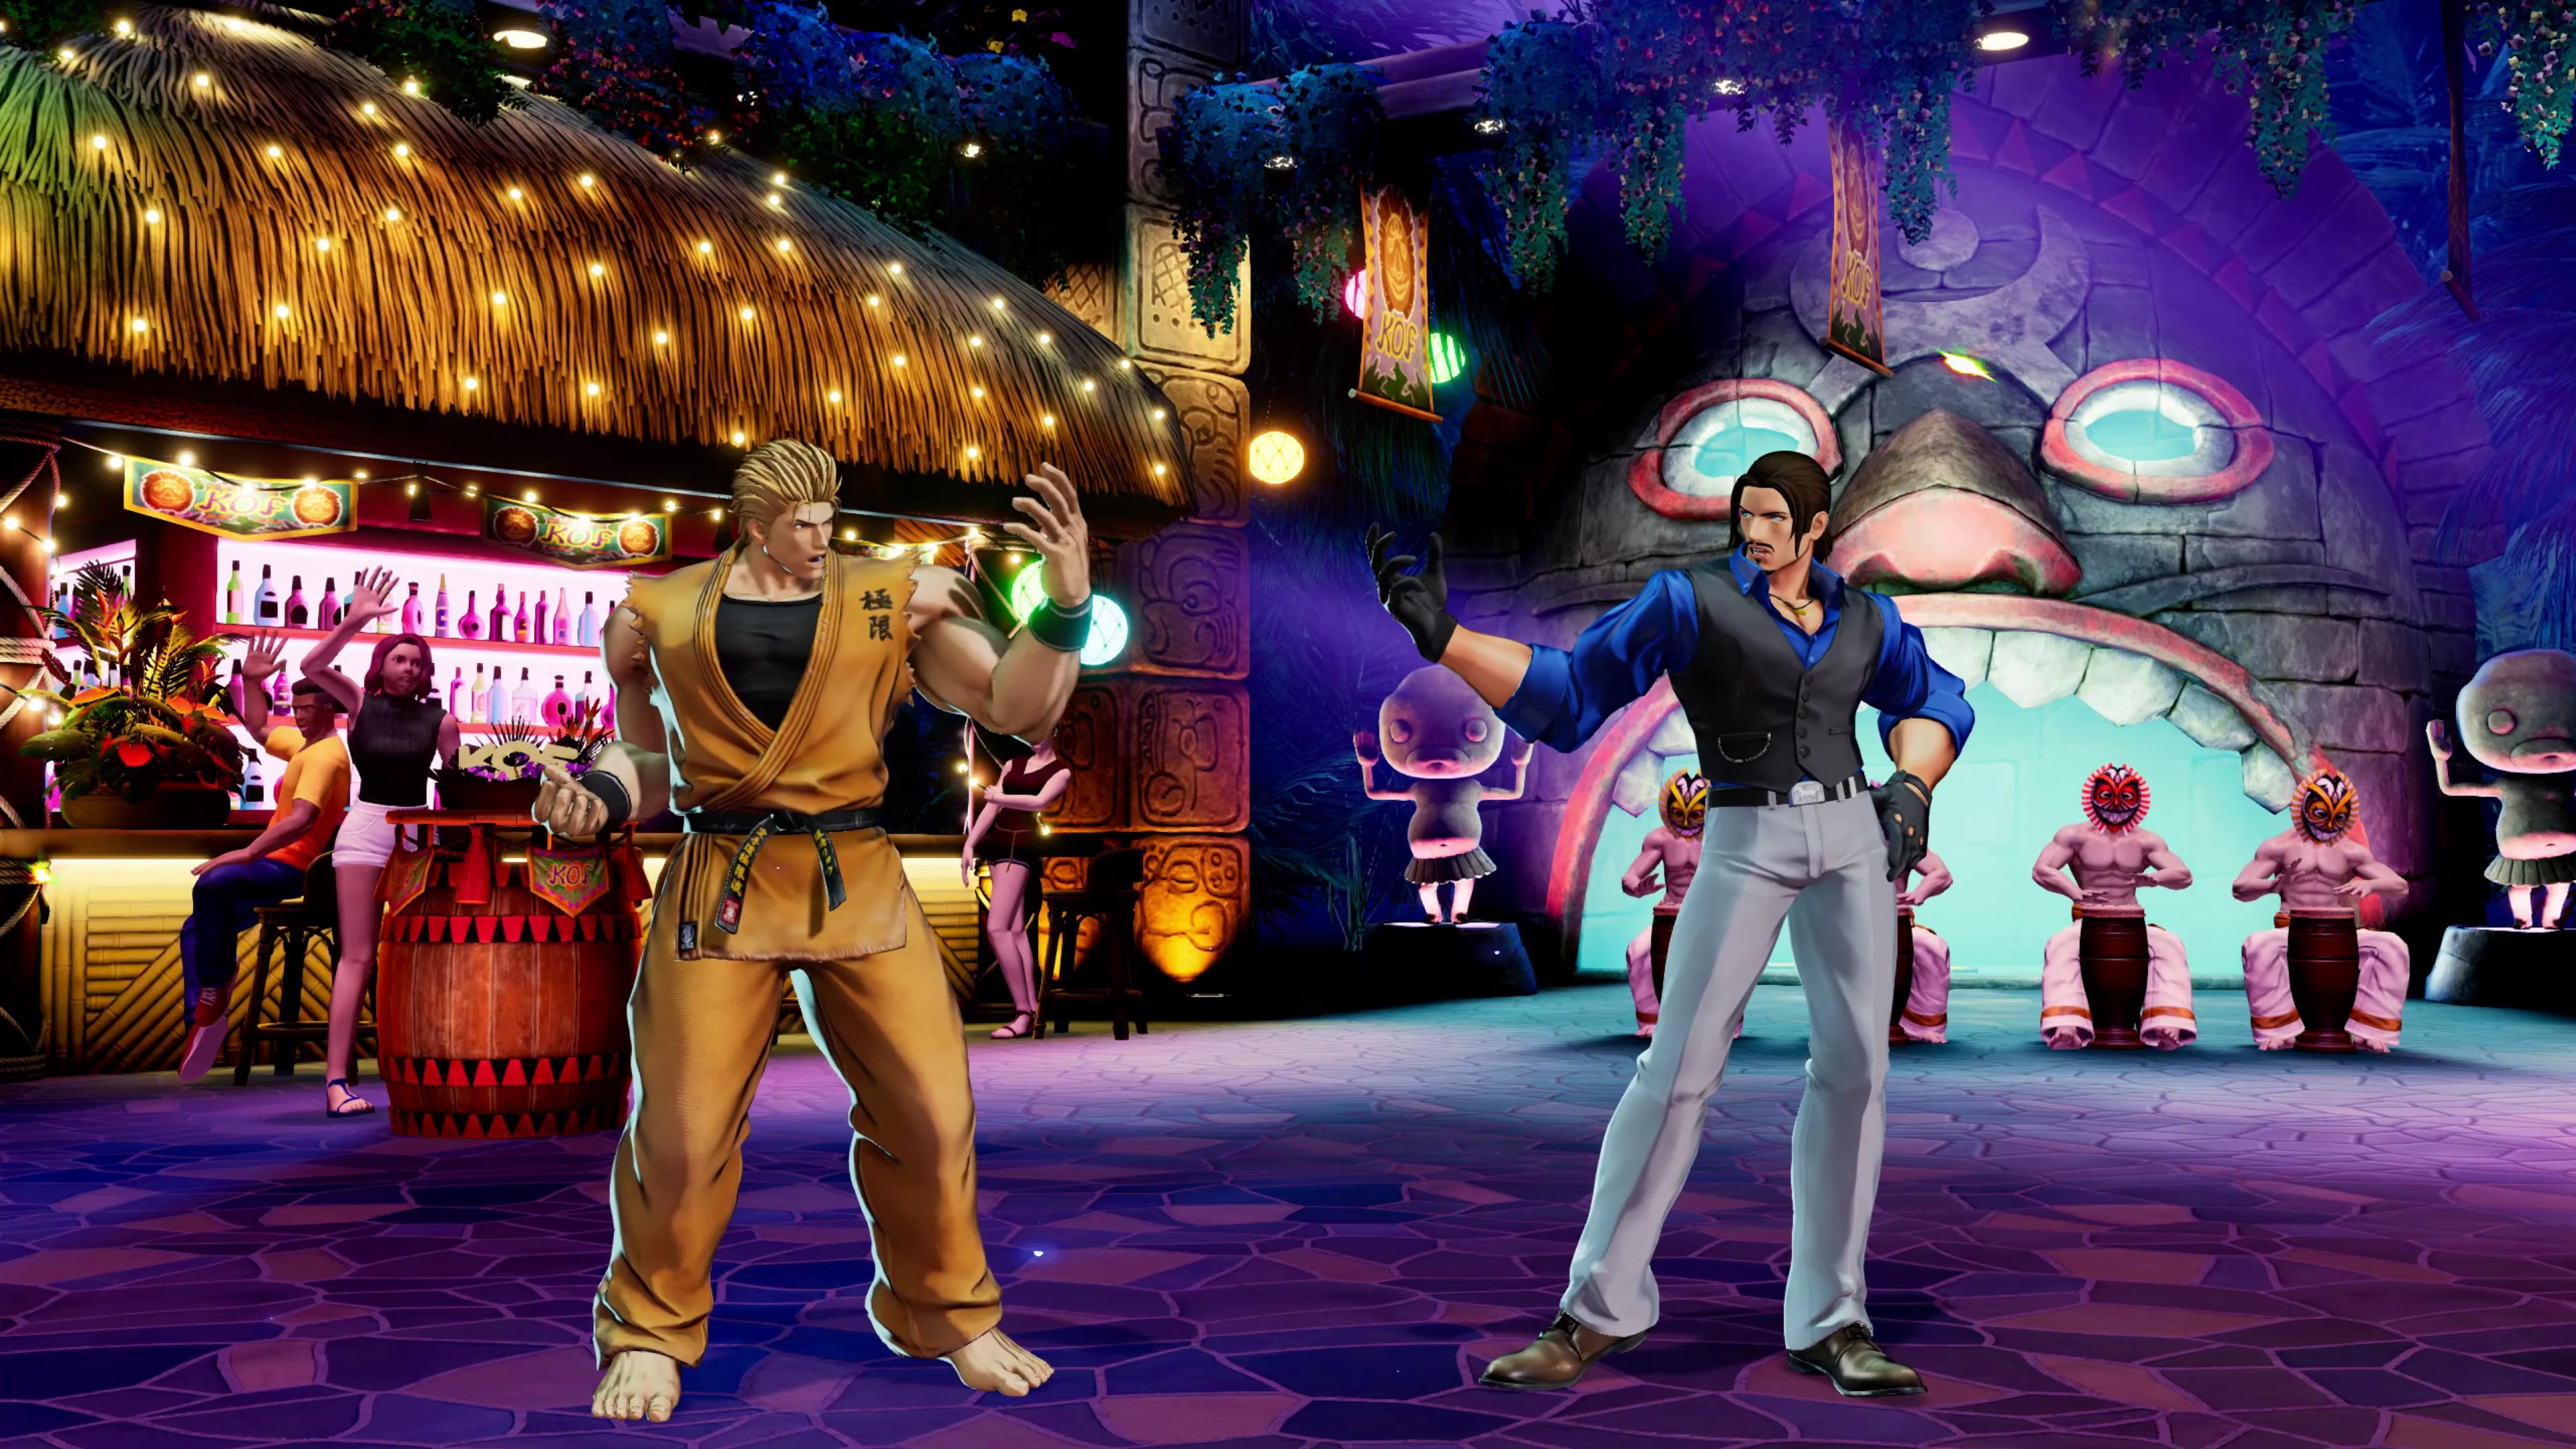 Robert and Ryo KOF15 reveal 3 out of 9 image gallery